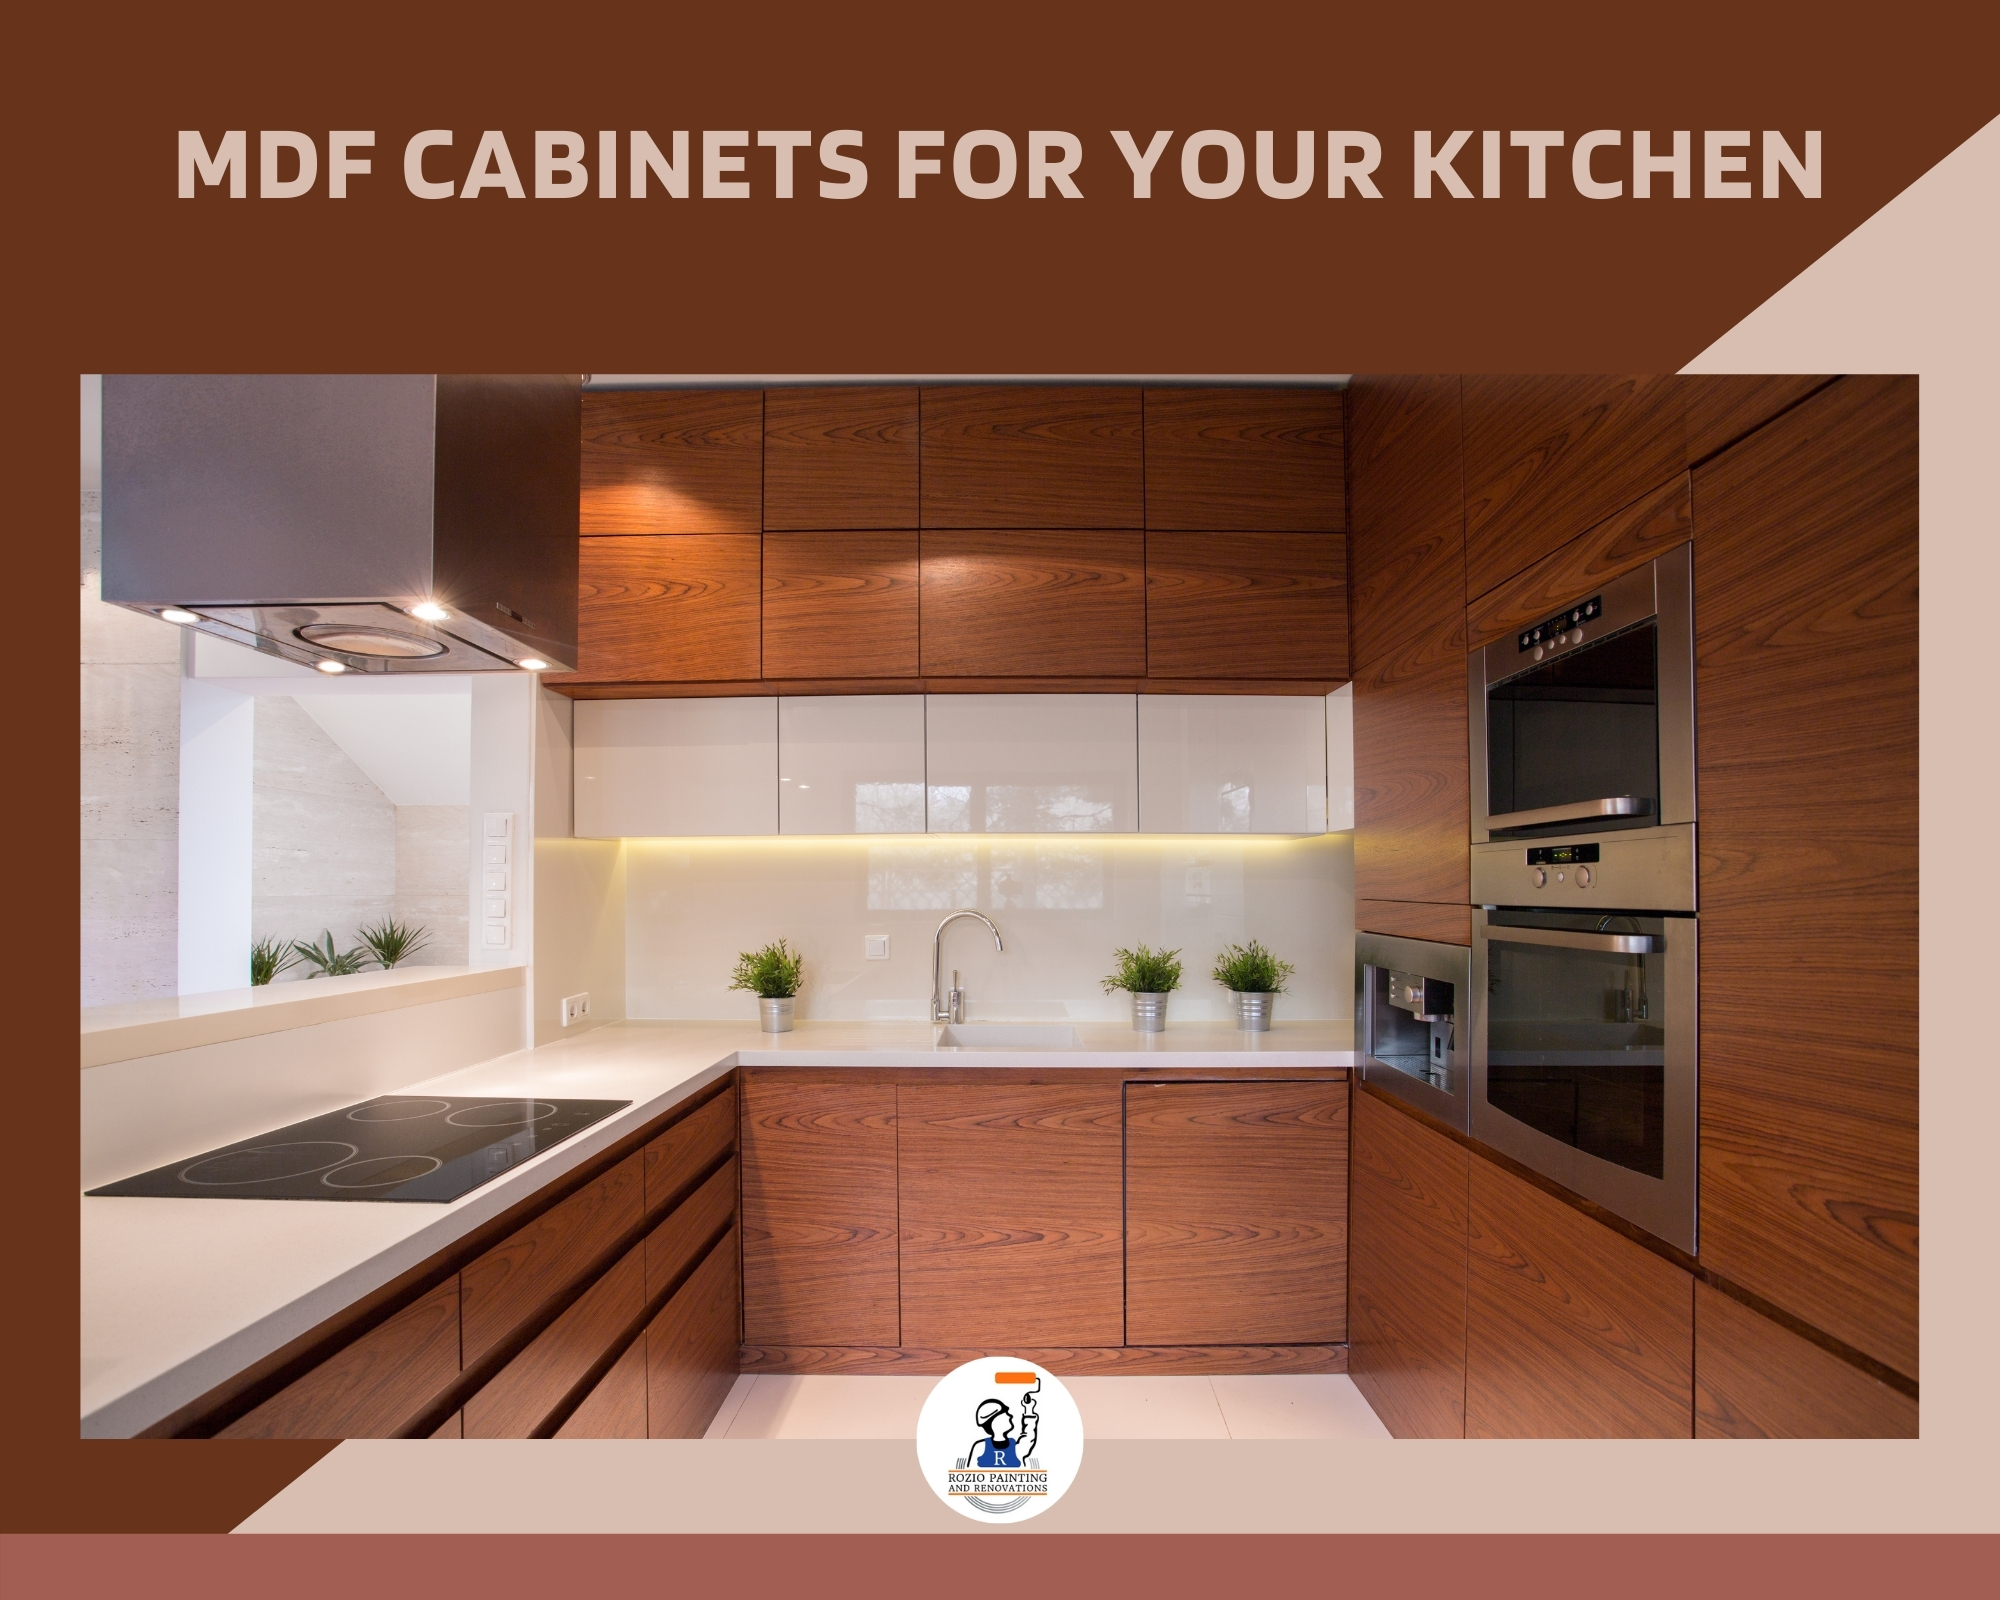 MDF Cabinets For Your Kitchen